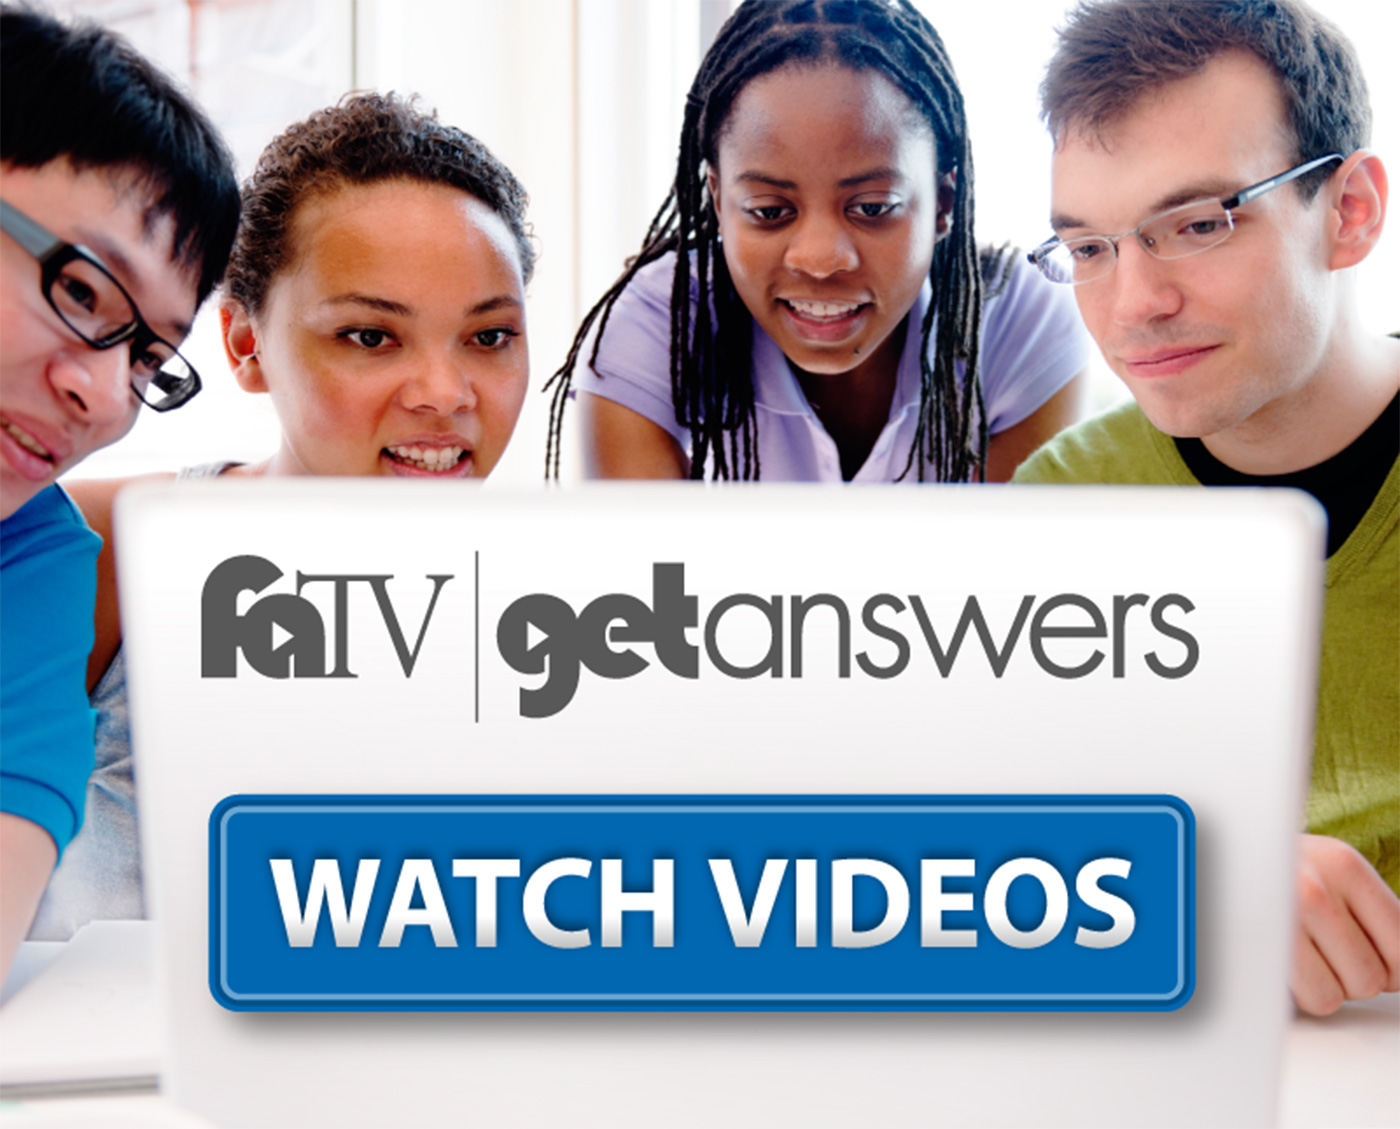 Promotional banner for Financial Aid TV videos.